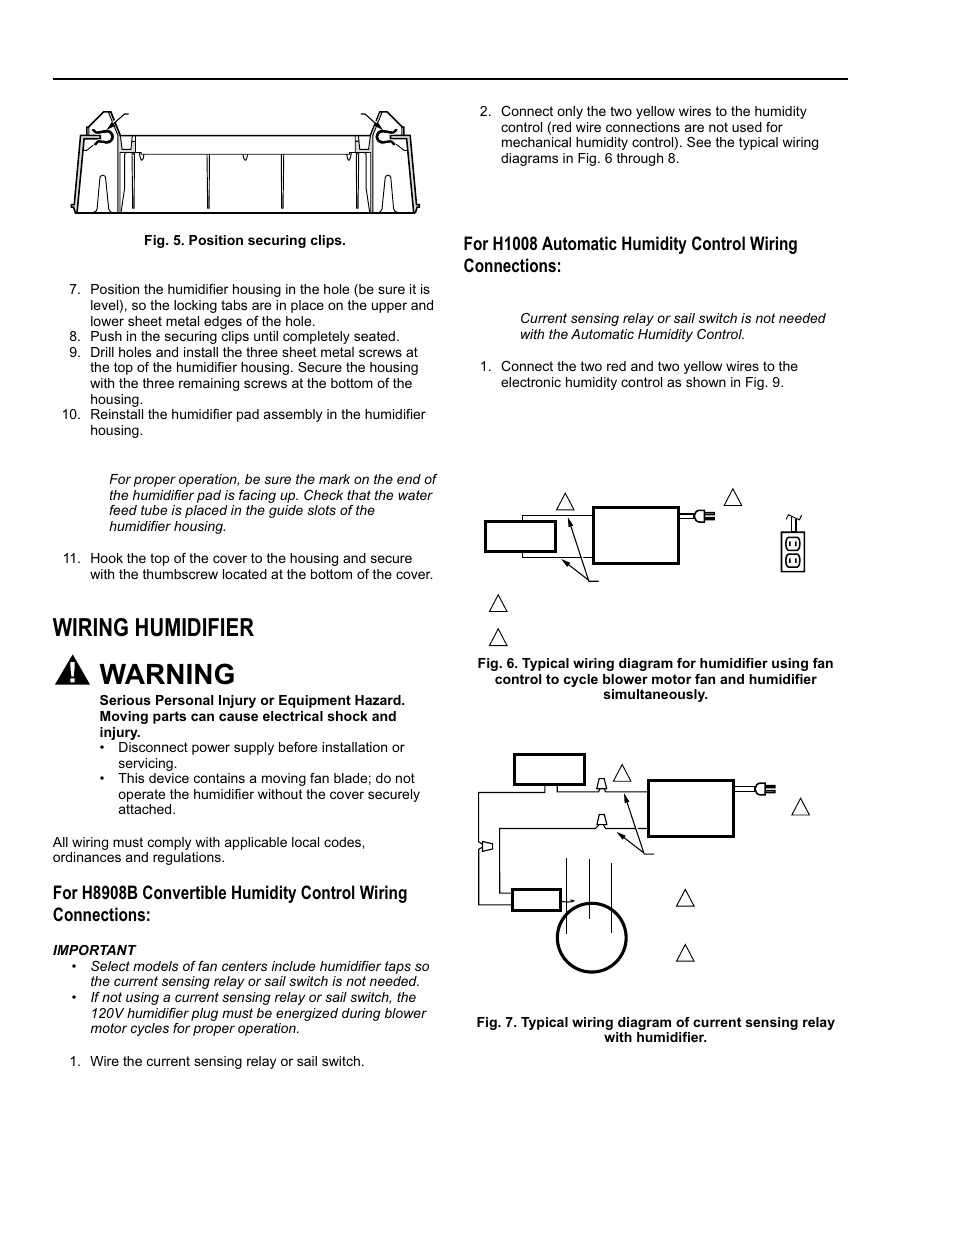 Honeywell Sail Switch Wiring Diagram Trusted Gas Valve Warning Humidifier Enviracaire He365b User Valves